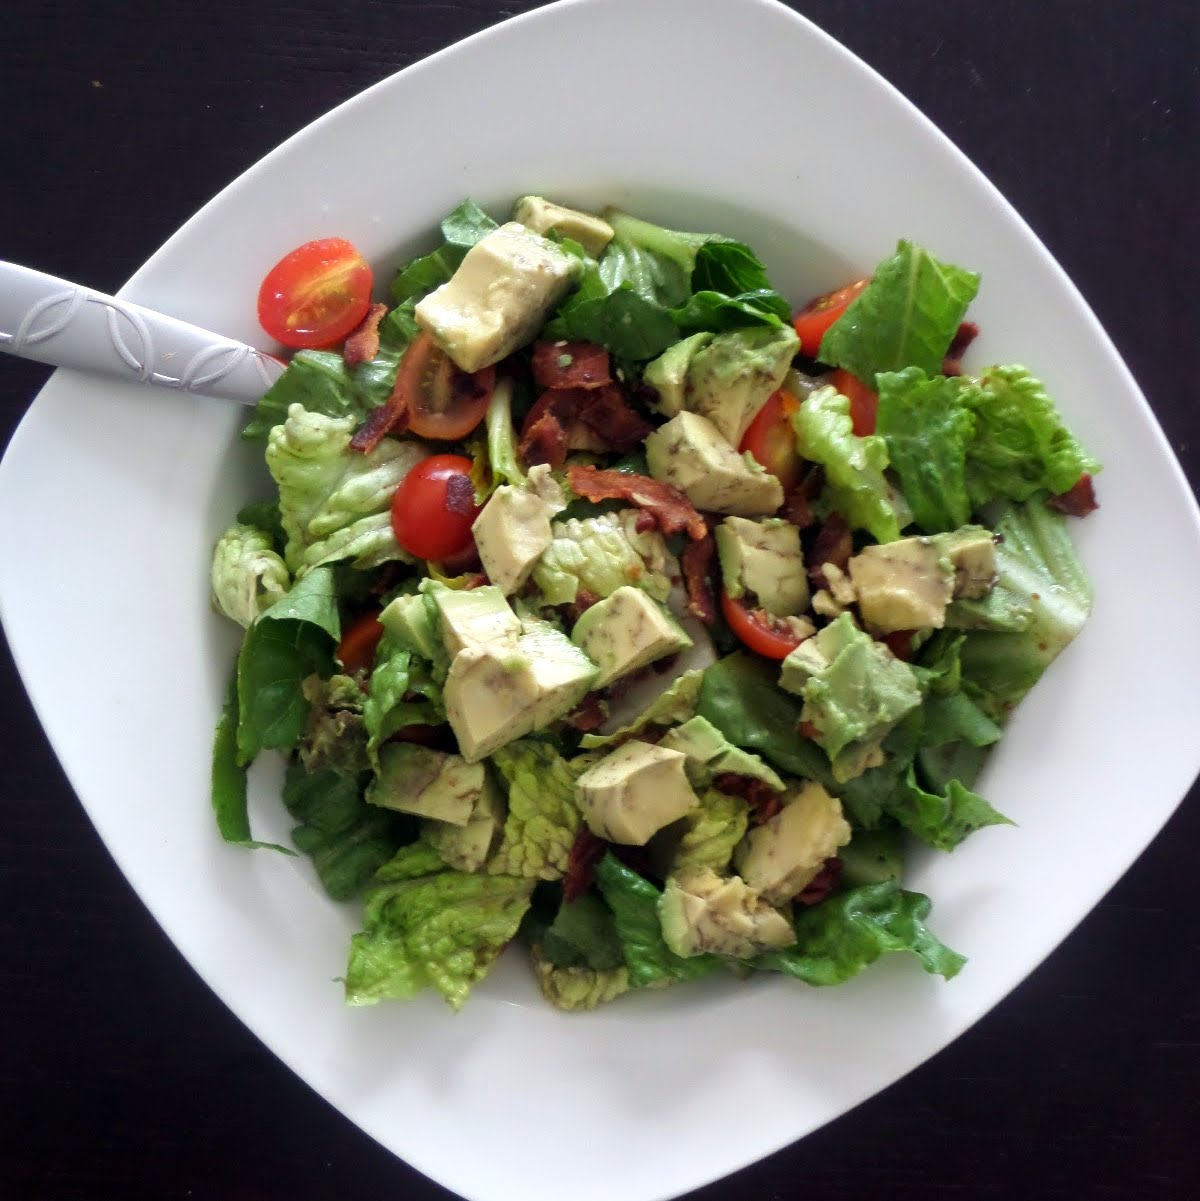 Avocado B.L.T. Salad: Crisp green lettuce tossed in balsamic vinaigrette and topped with crispy bacon, juicy tomatoes, and creamy avocado.